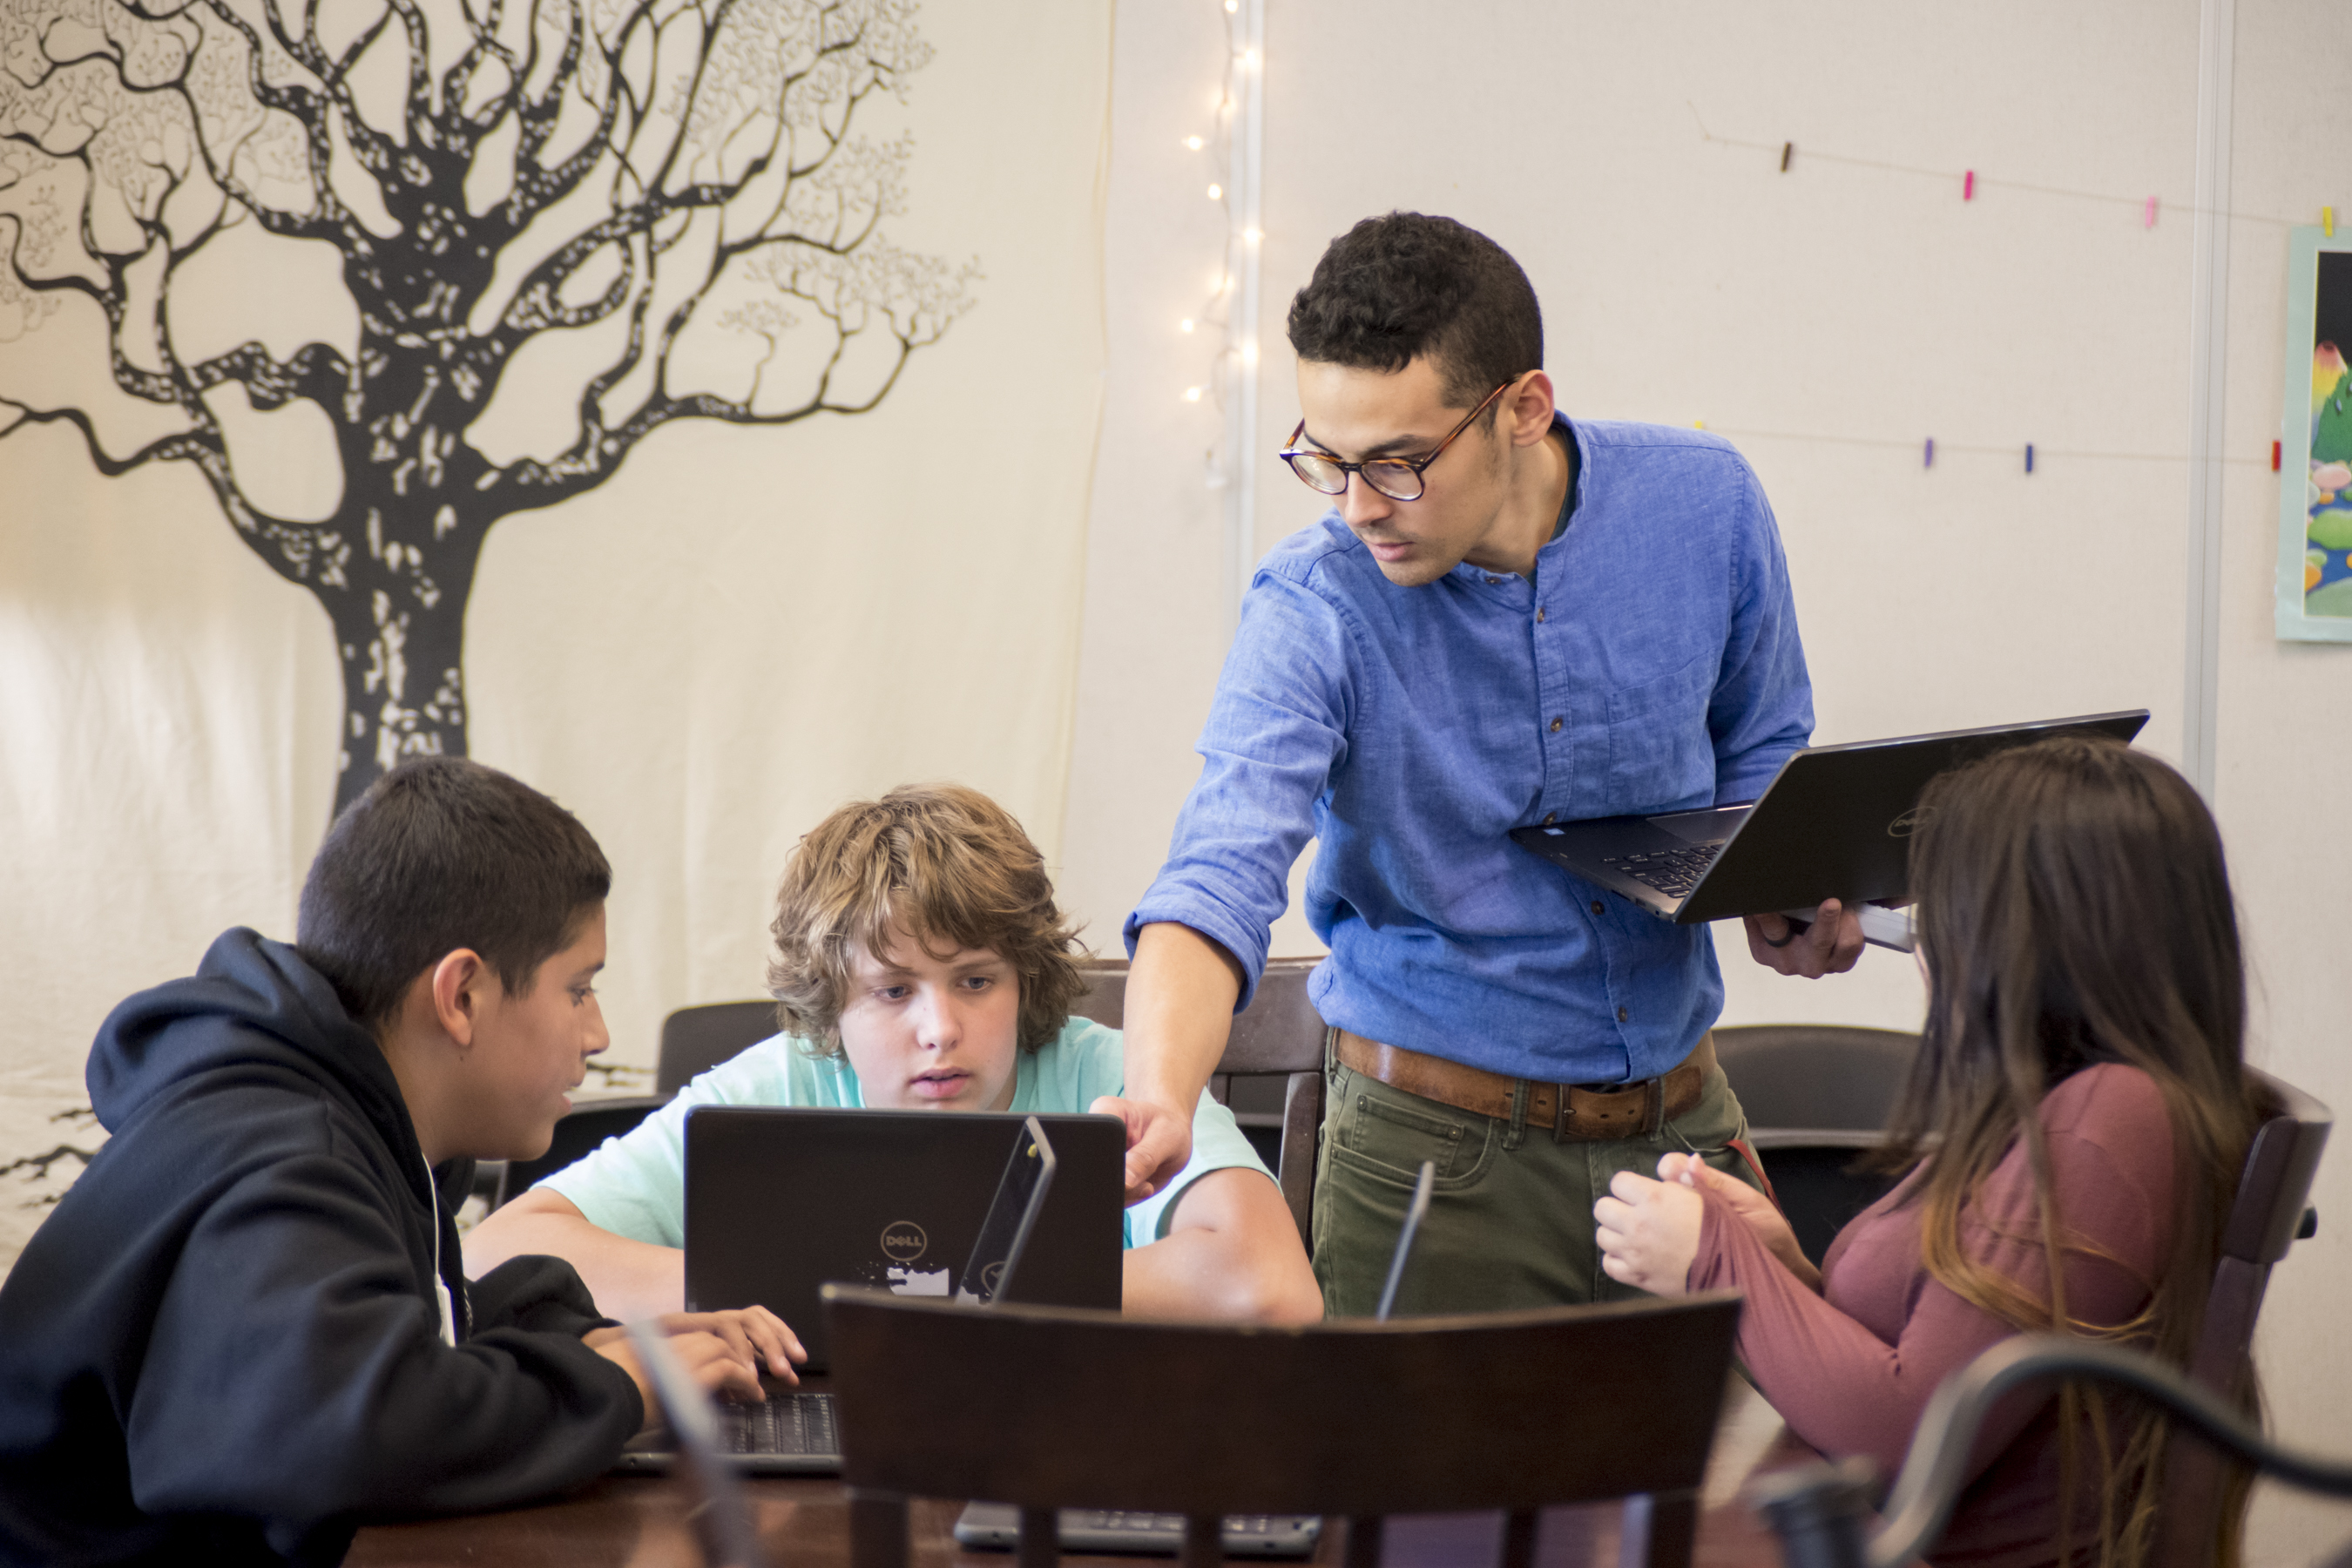 a man teaches students in a classroom